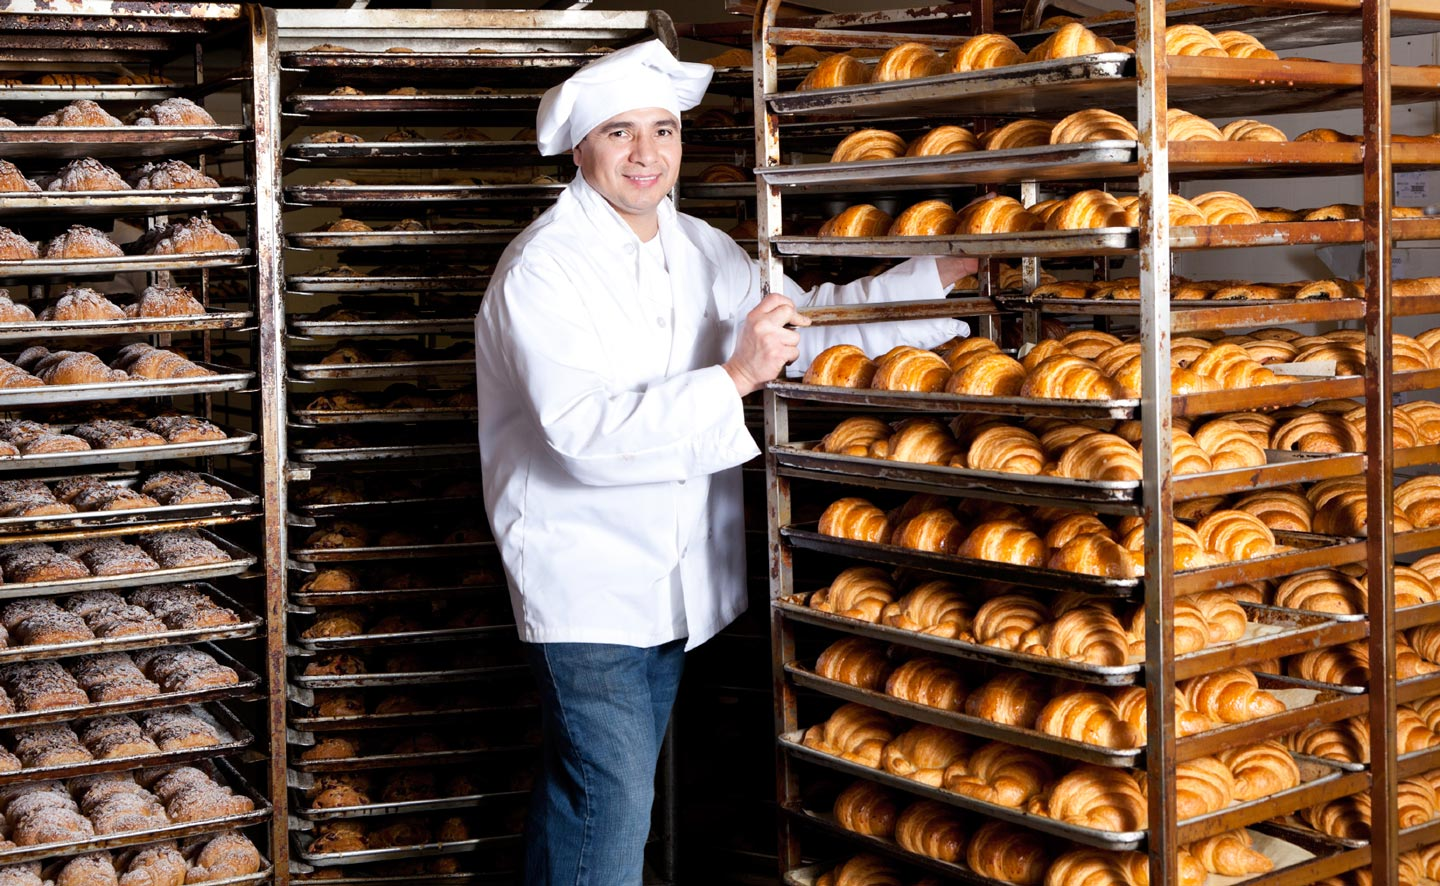 A baker stands next to one of many racks filled with baked goods.